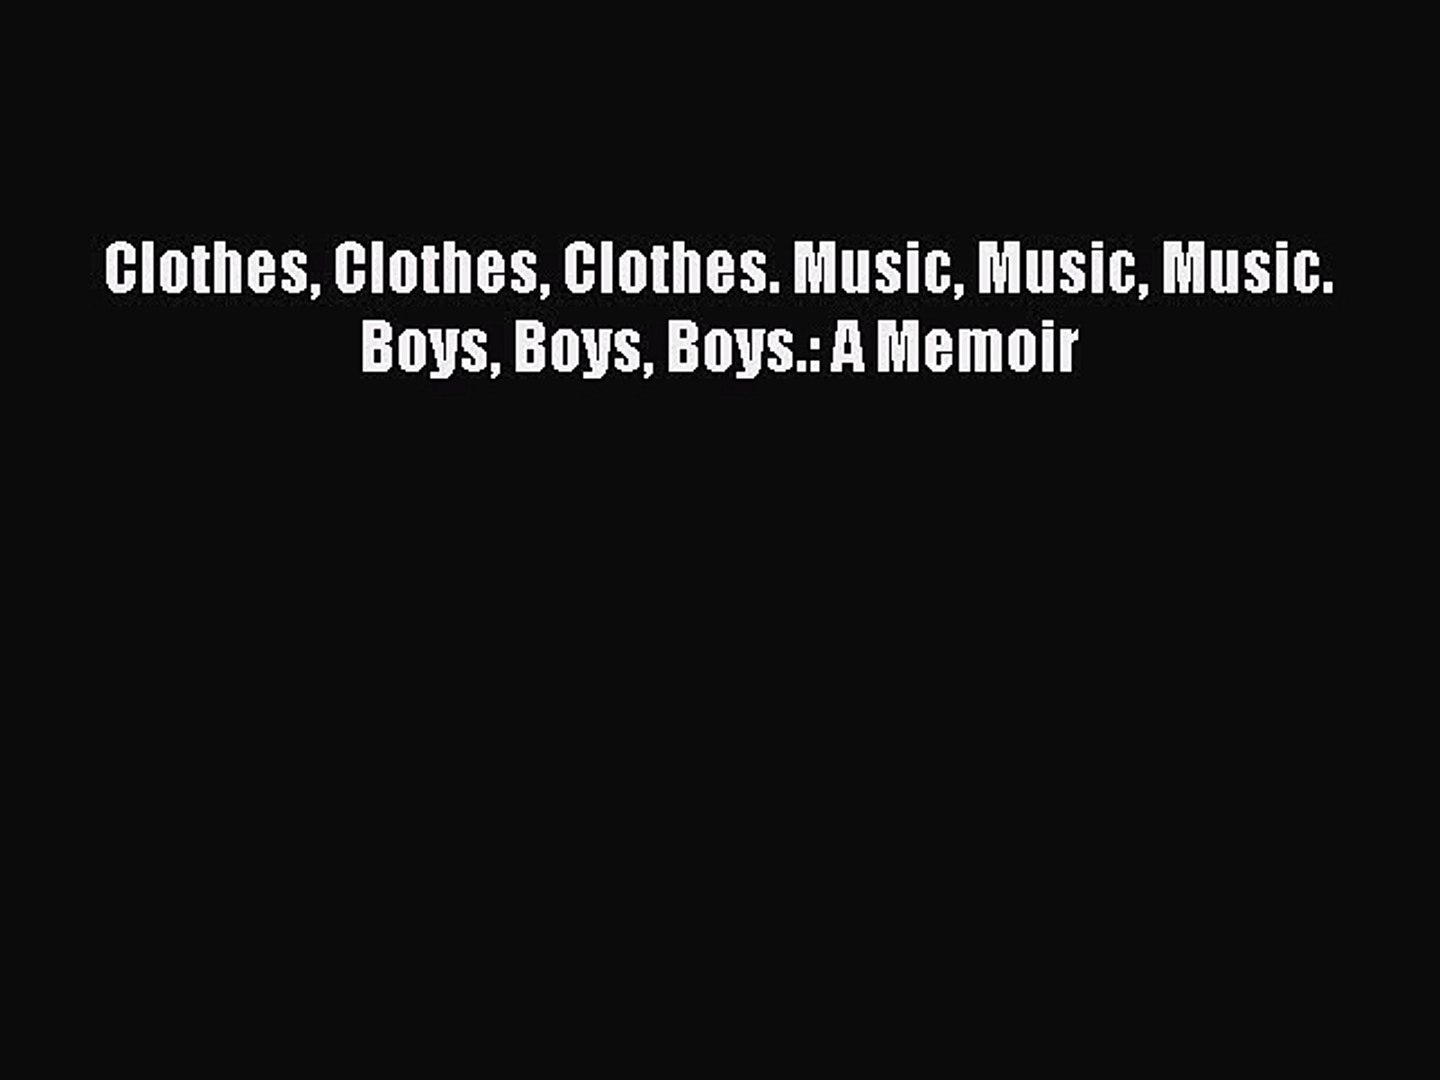 Download Clothes Clothes Clothes. Music Music Music. Boys Boys Boys.: A Memoir  EBook